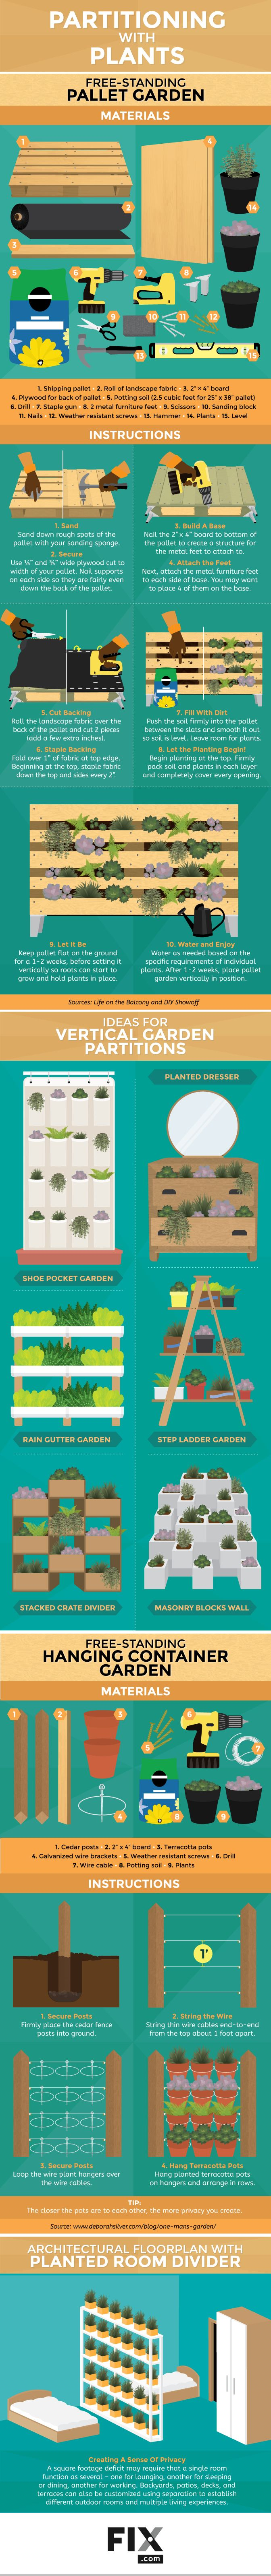 These are such great ideas on how to create vertical gardens. I've been thinking about creating a vertical garden in my backyard and this is just perfect.